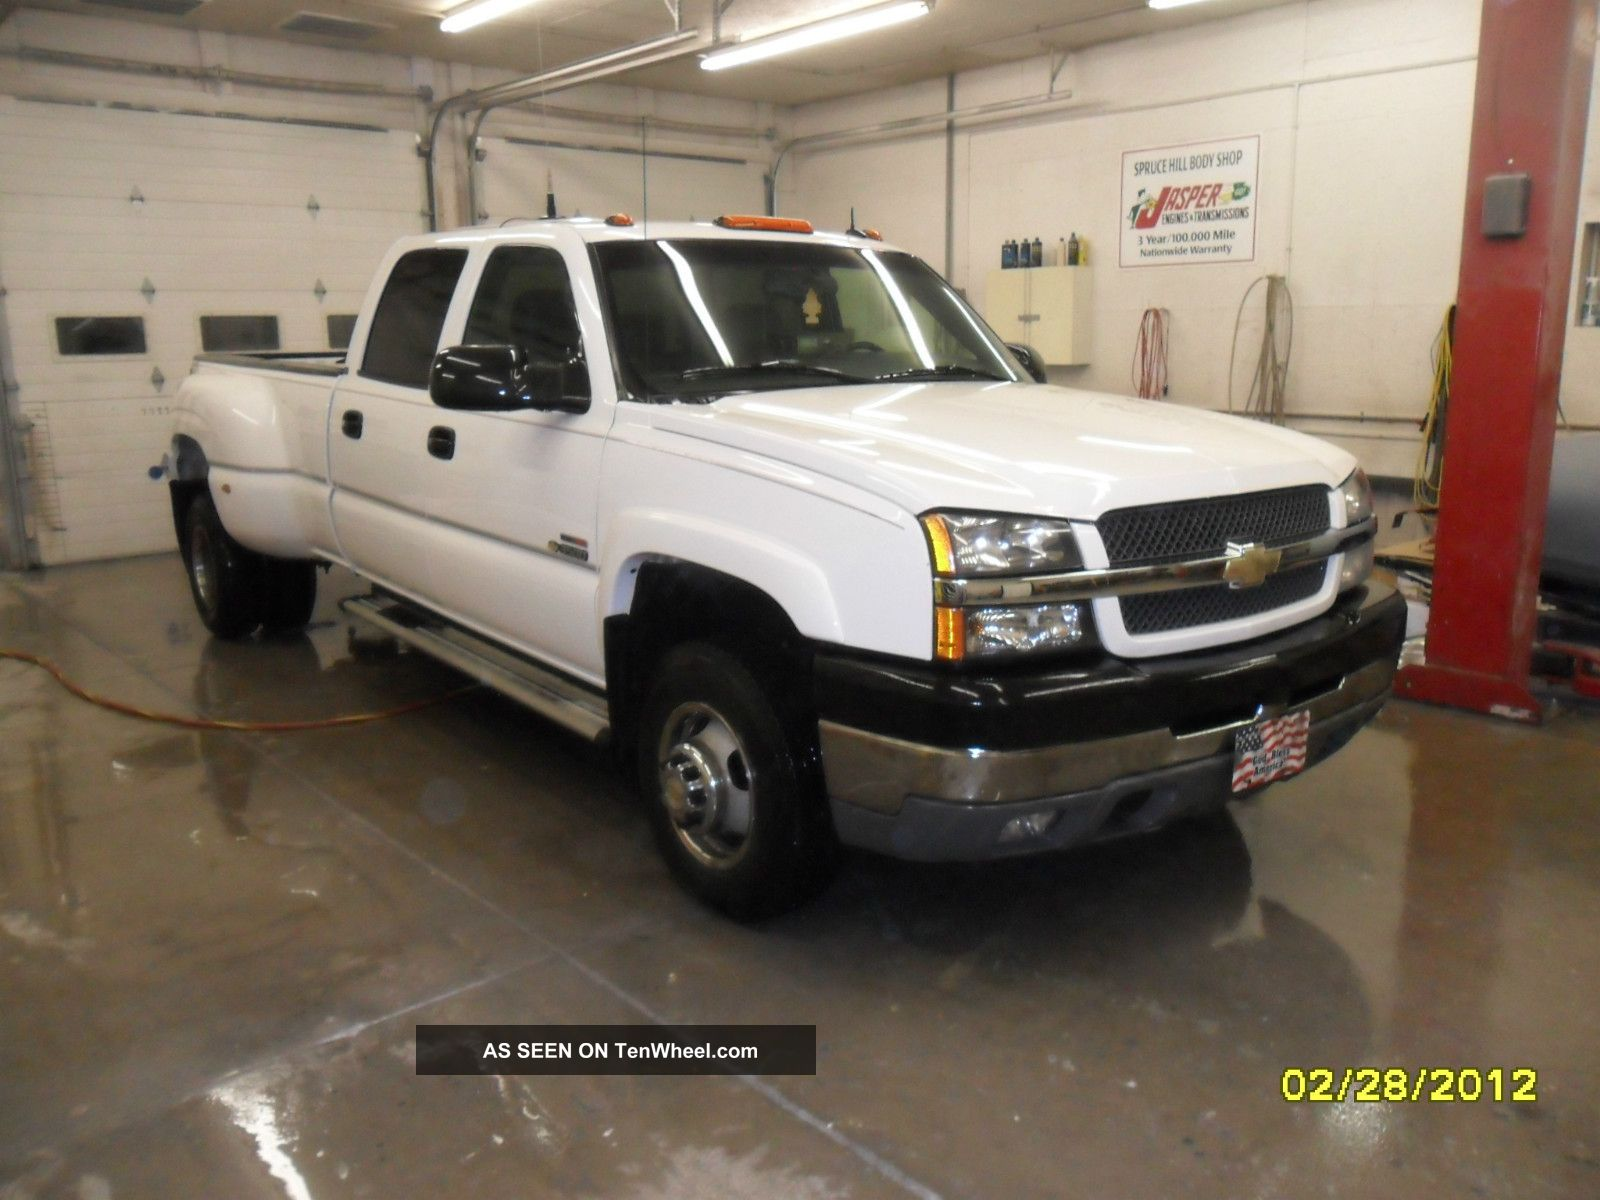 2003 Chevrolet Silverado 3500 Duramax Diesel Dually Silverado 3500 photo